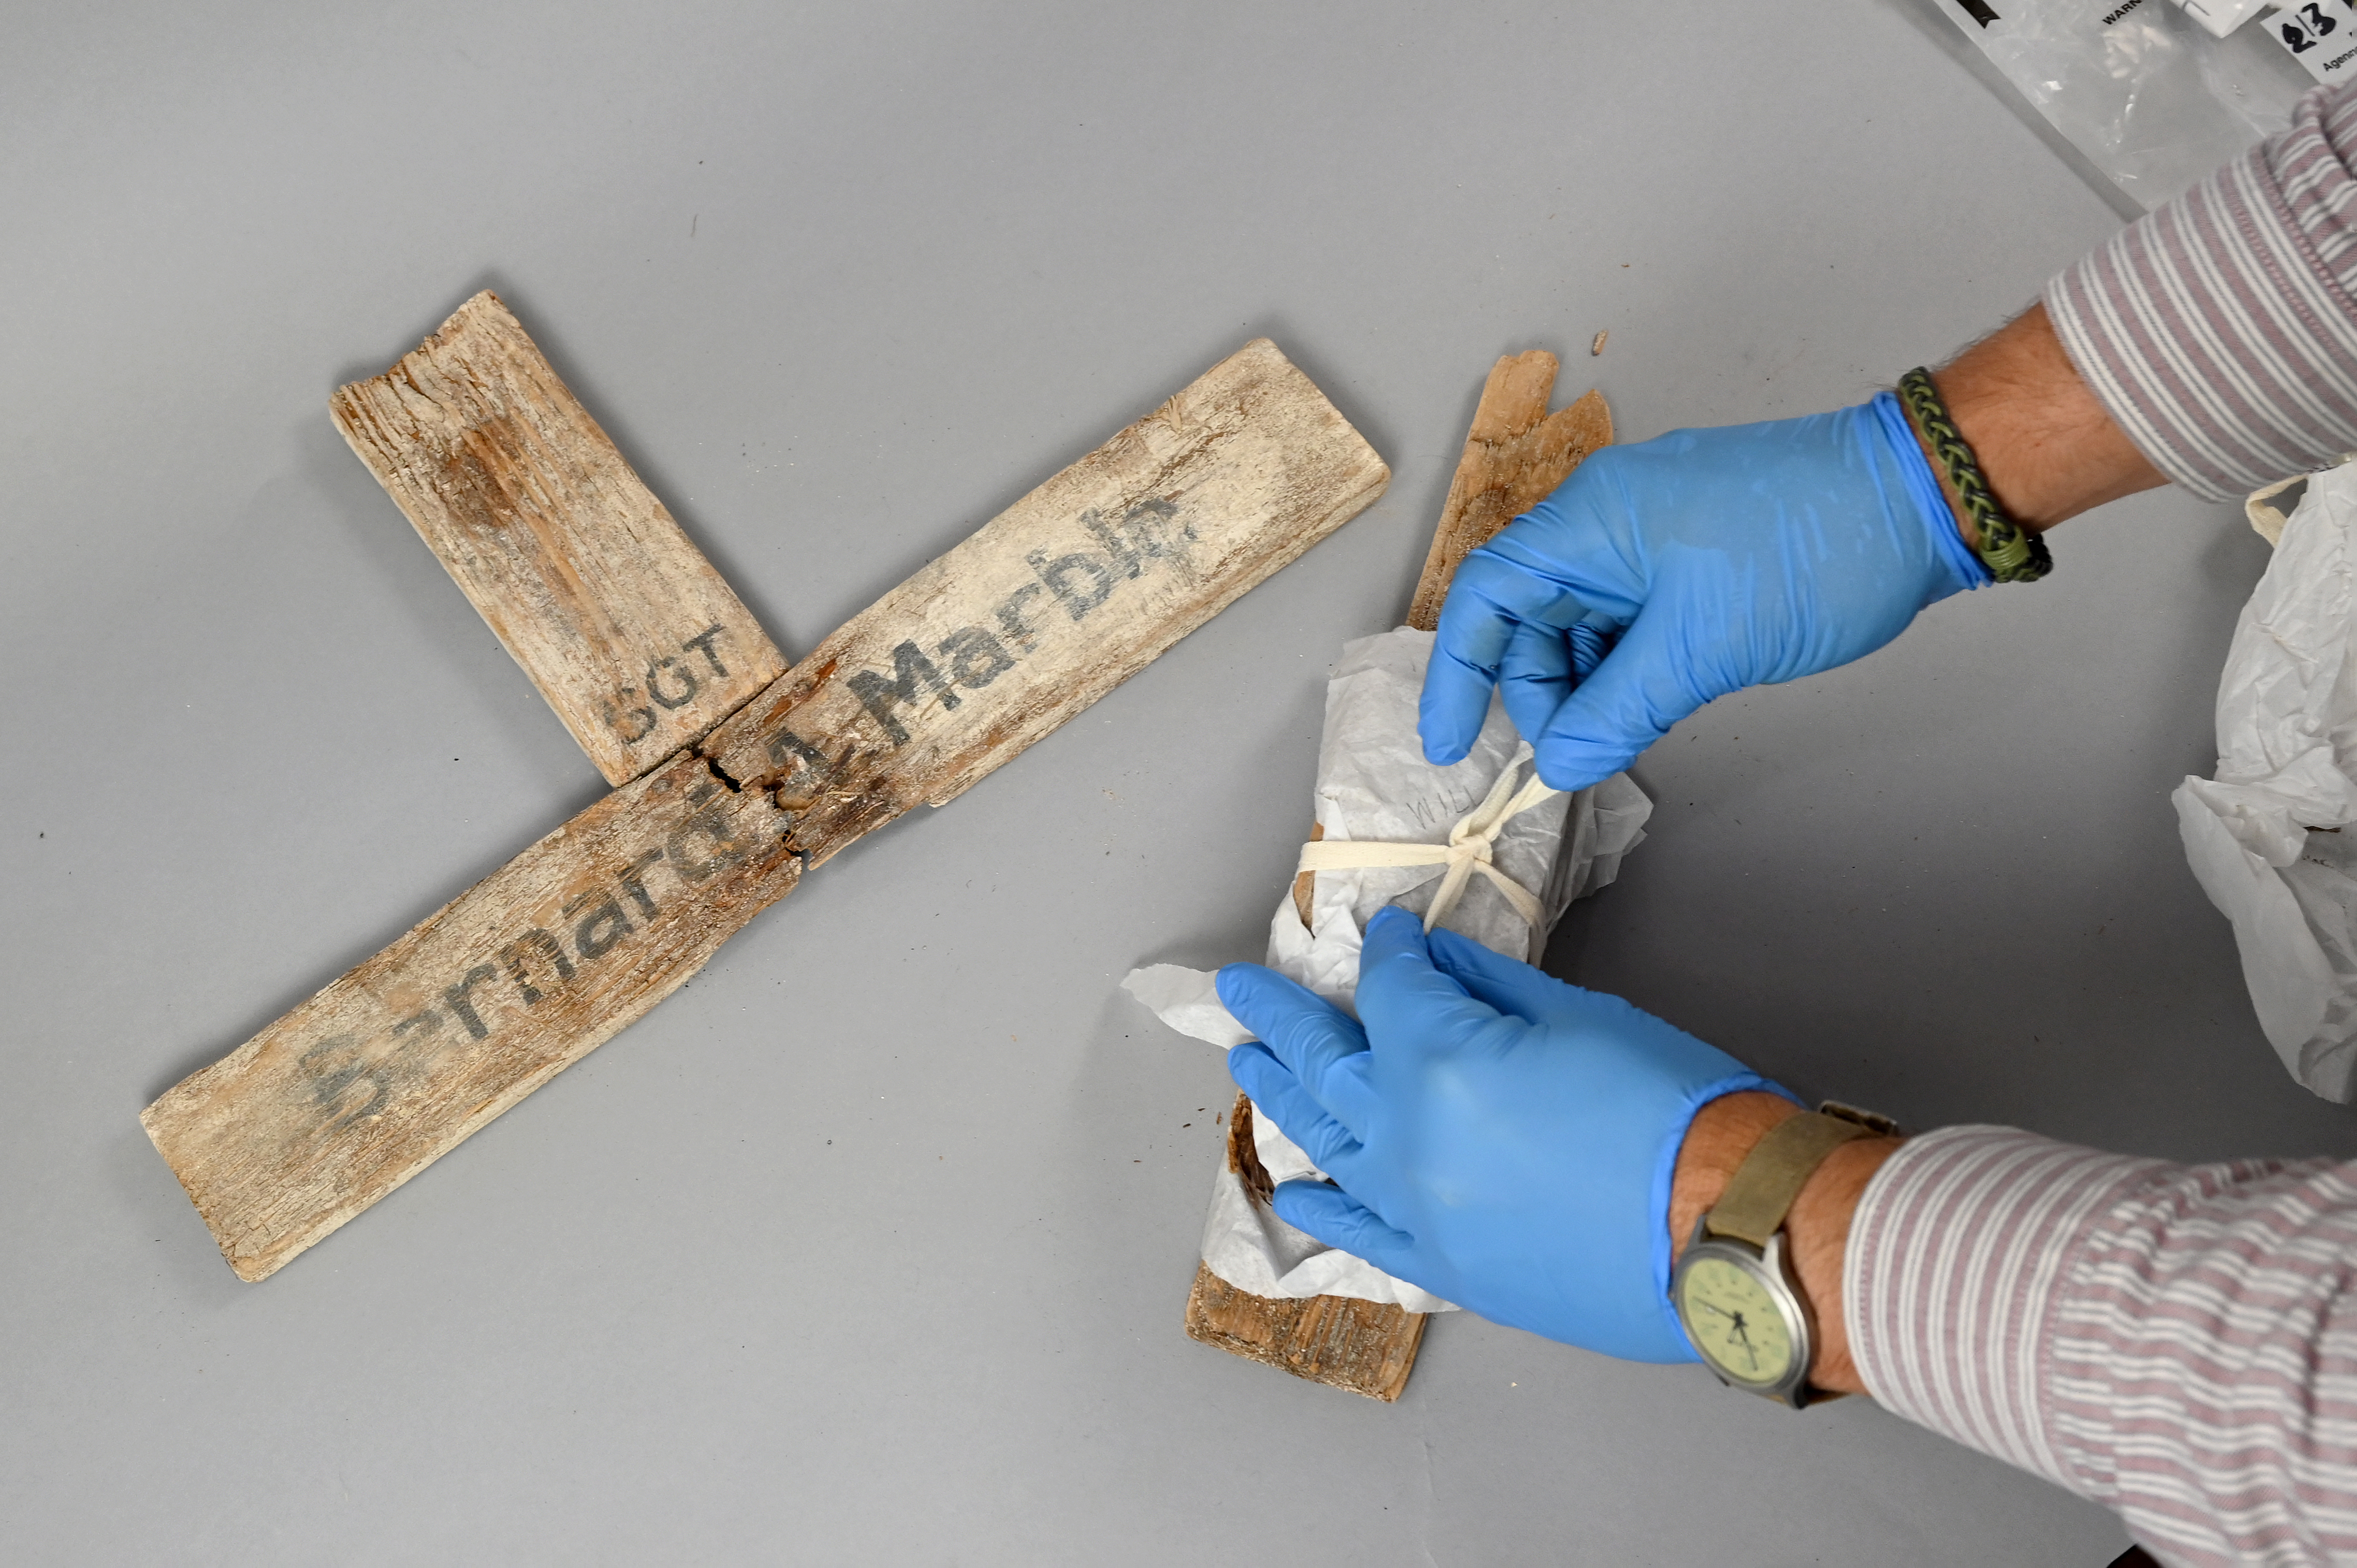 Owen L. Conner, curator for the National Museum of the Marine Corps, unwraps pieces of a wooden cross bearing the name of Sgt. Bernard A. Marble, 28, of Massachusetts, one of more than 1,000 Marines who died in the 1943 battle for Tarawa. MUST CREDIT: Washington Post photo by Katherine Frey.